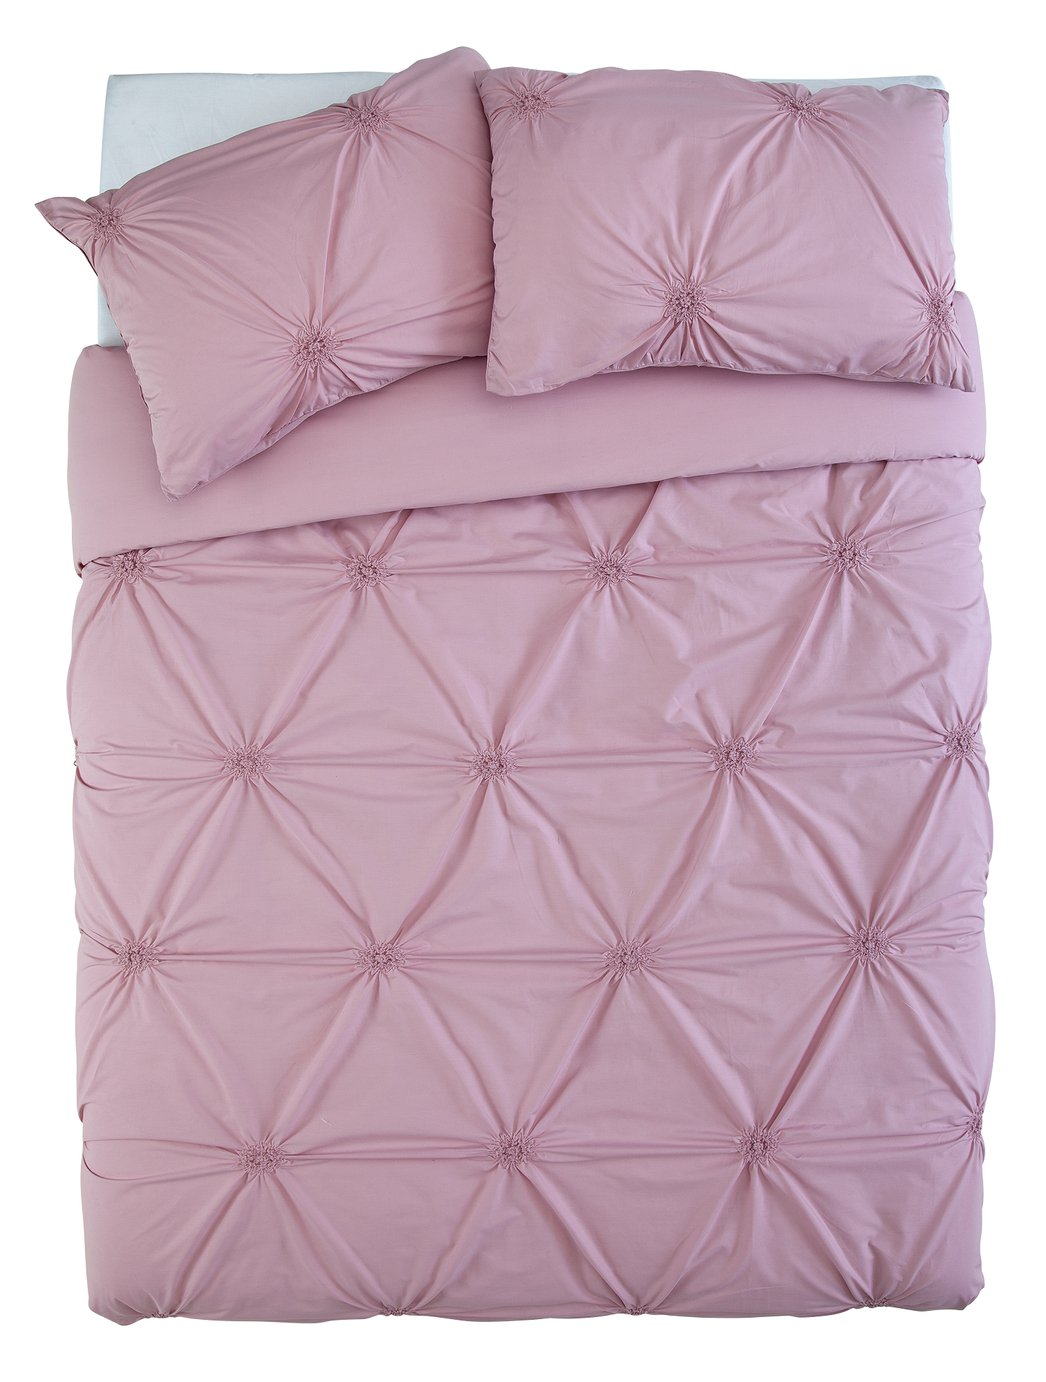 Sainsbury's Home Meadow Pink Ruched Bedding Set - Single